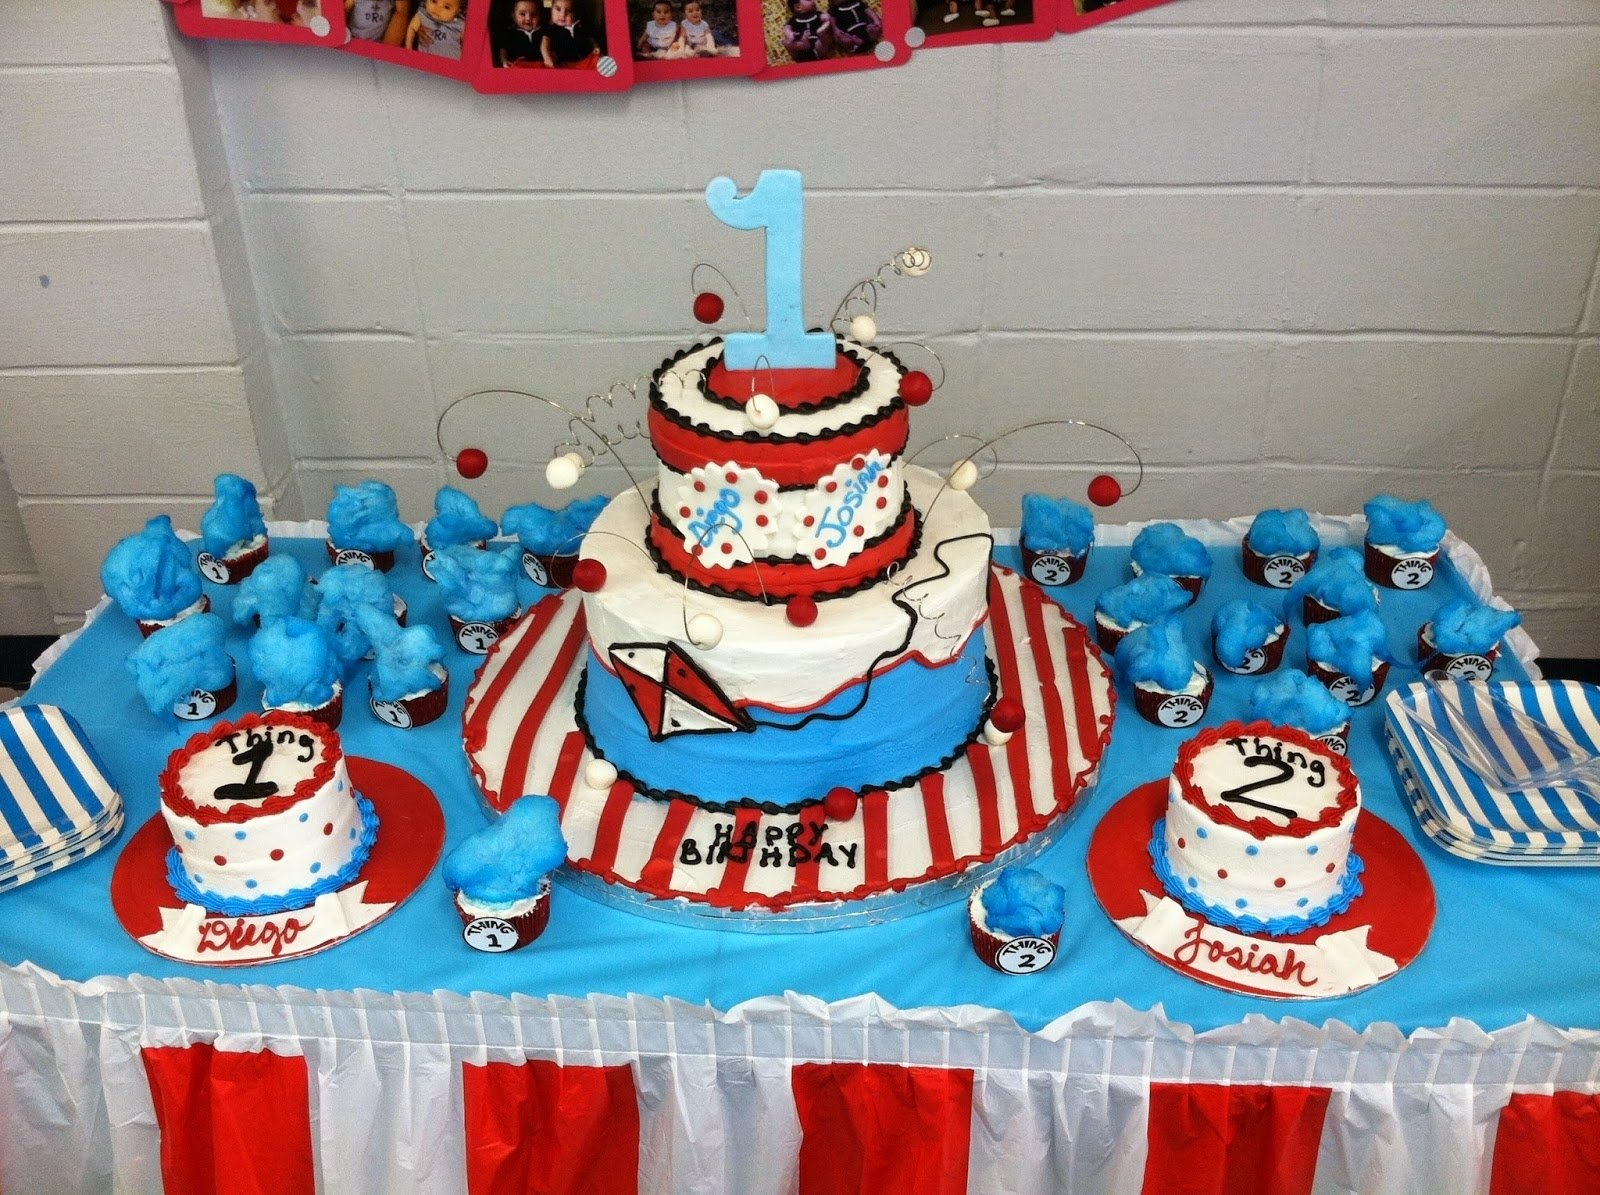 10 Awesome Thing 1 And Thing 2 Cake Ideas nola parties and playdates thing one and thing two party